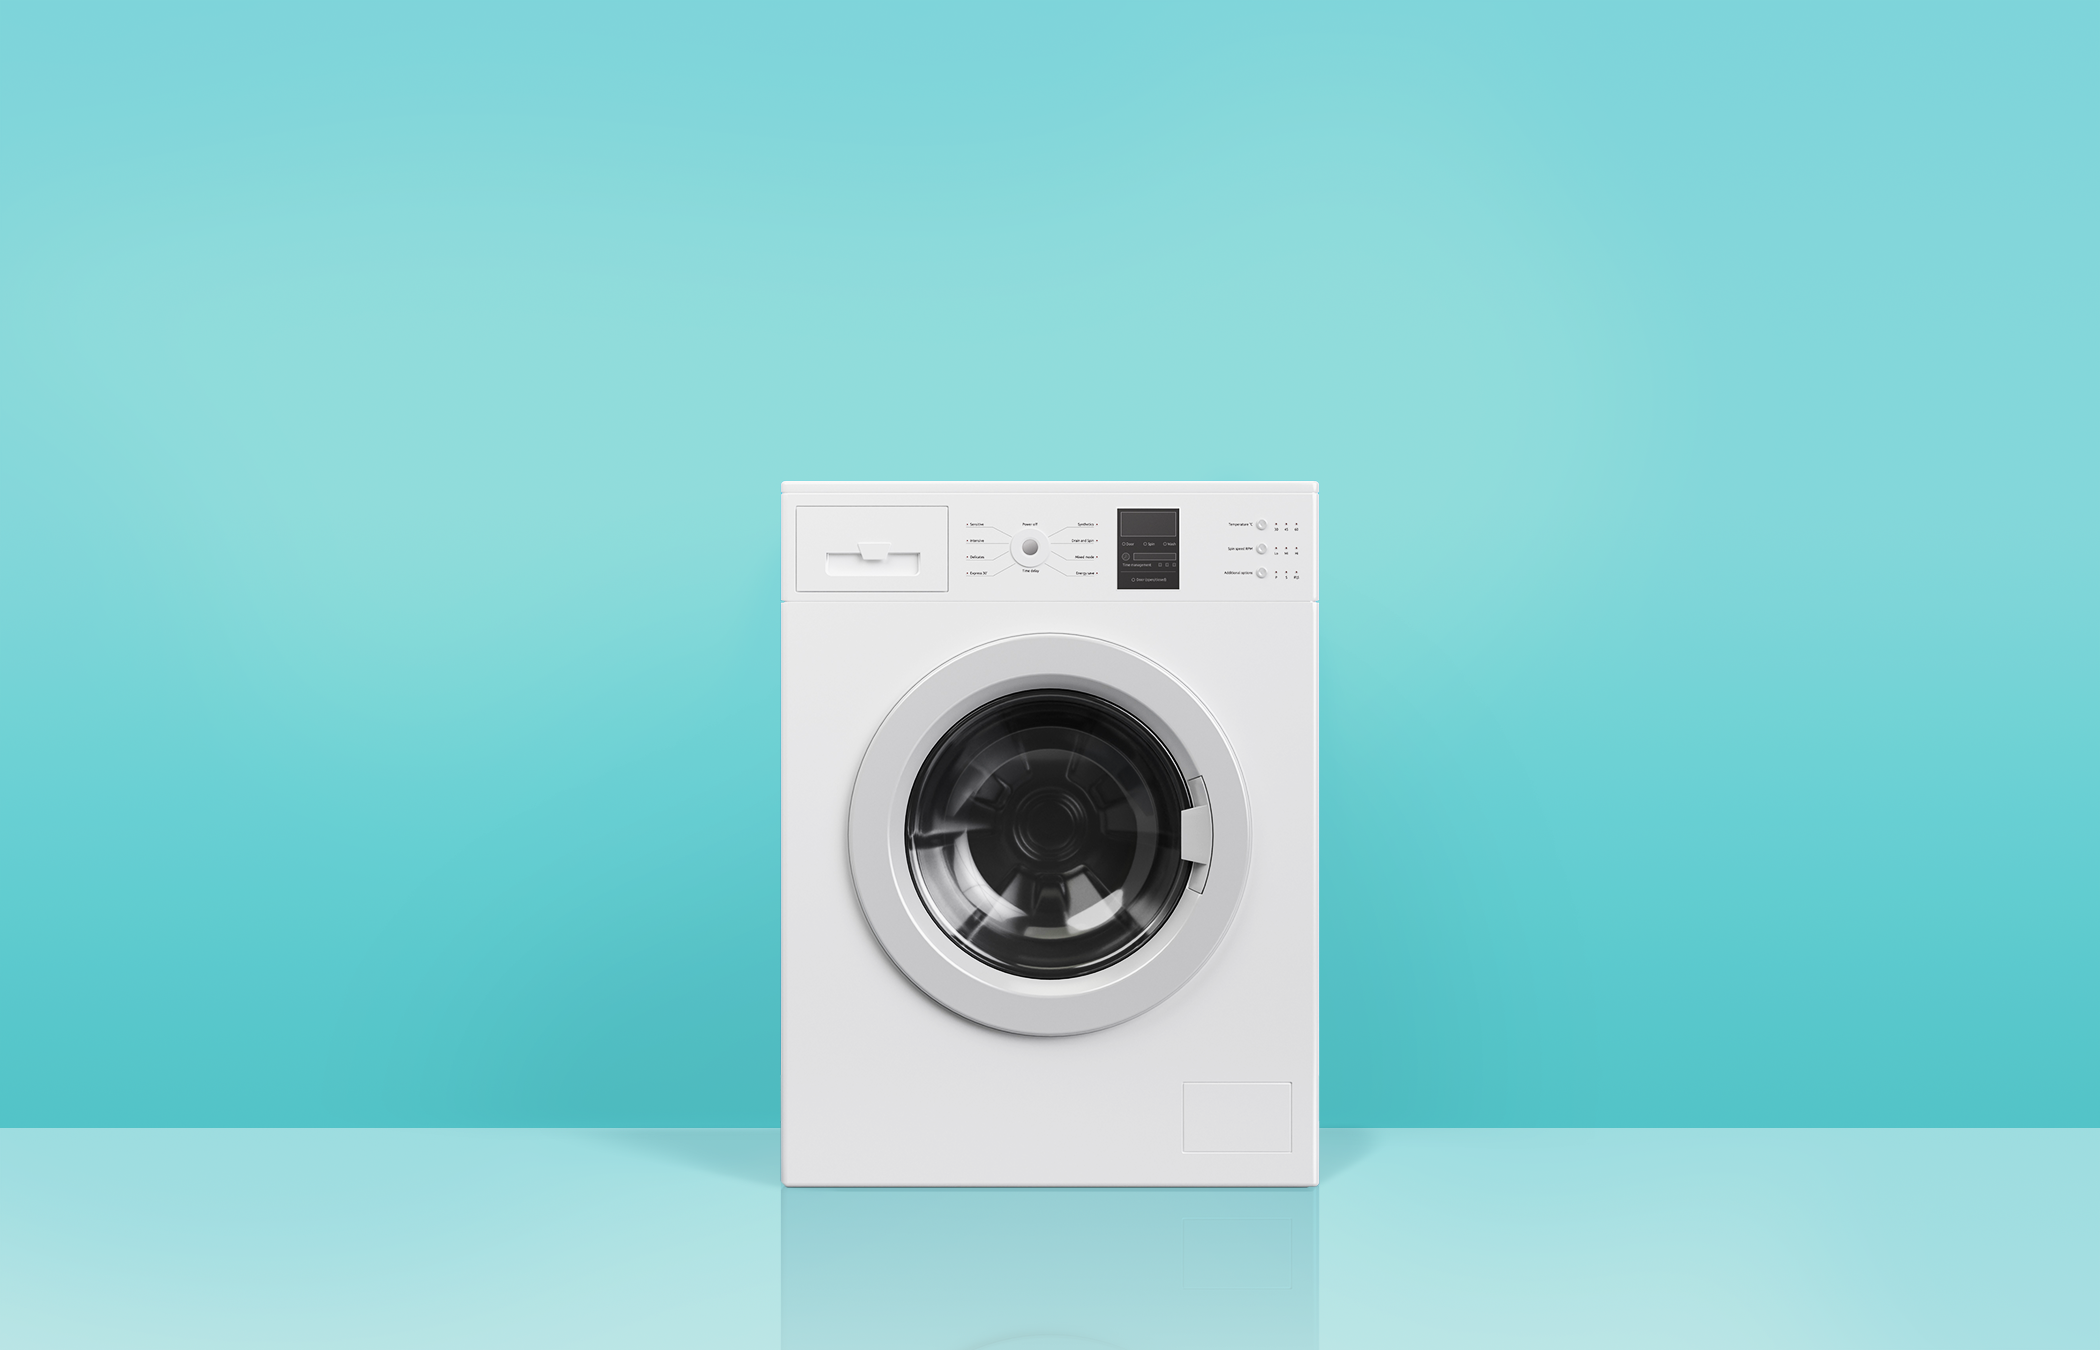 8 Best Washing Machines to Buy in 2019 - Top Washing Machine Reviews